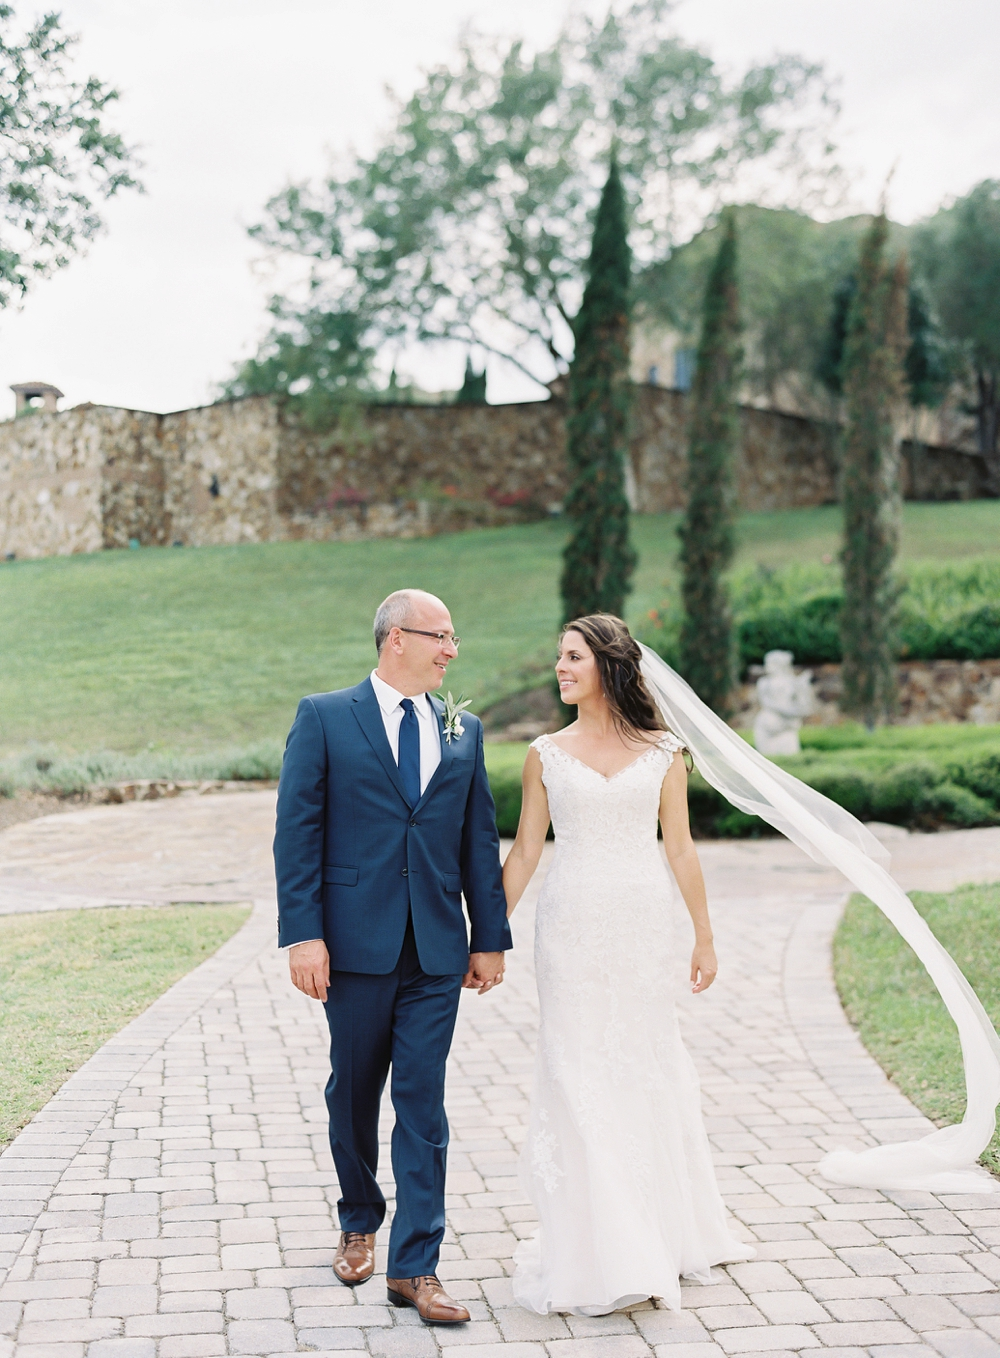 Vicki Grafton Photography - Fine Art Film Wedding Photographer - Bella Collina Wedding_0041.jpg